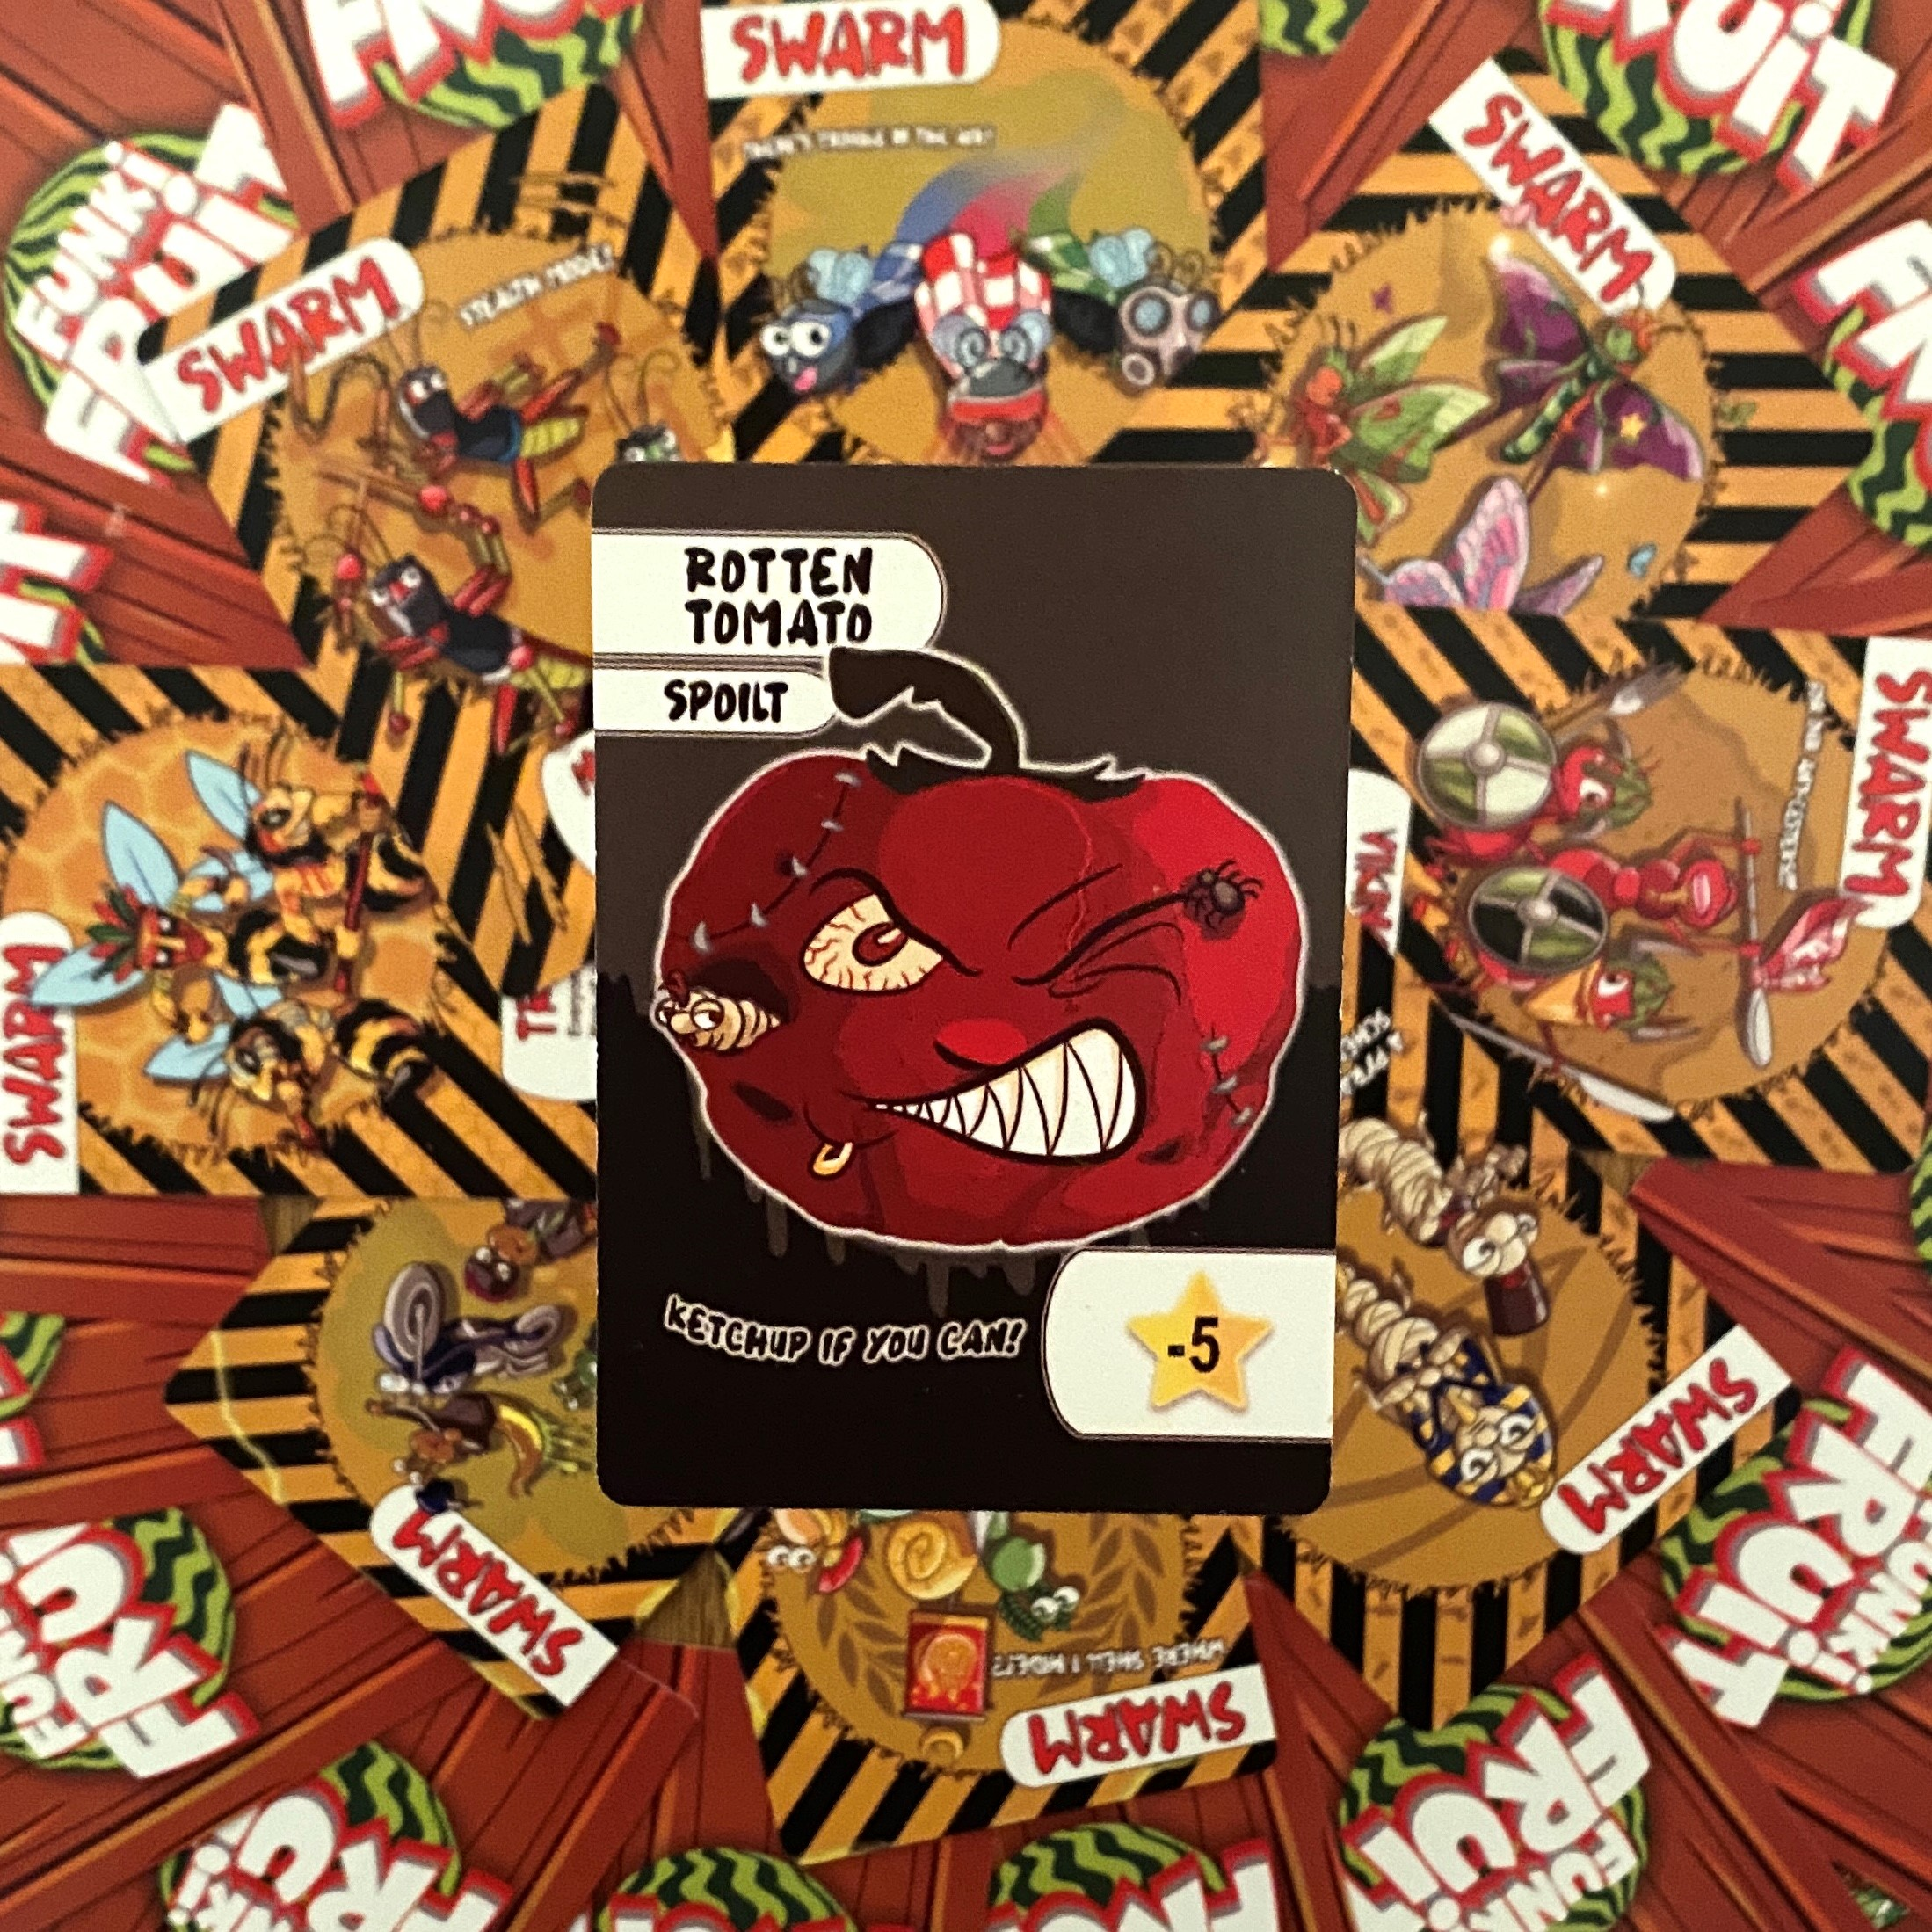 The Rotten Tomato Card from Funki Fruit